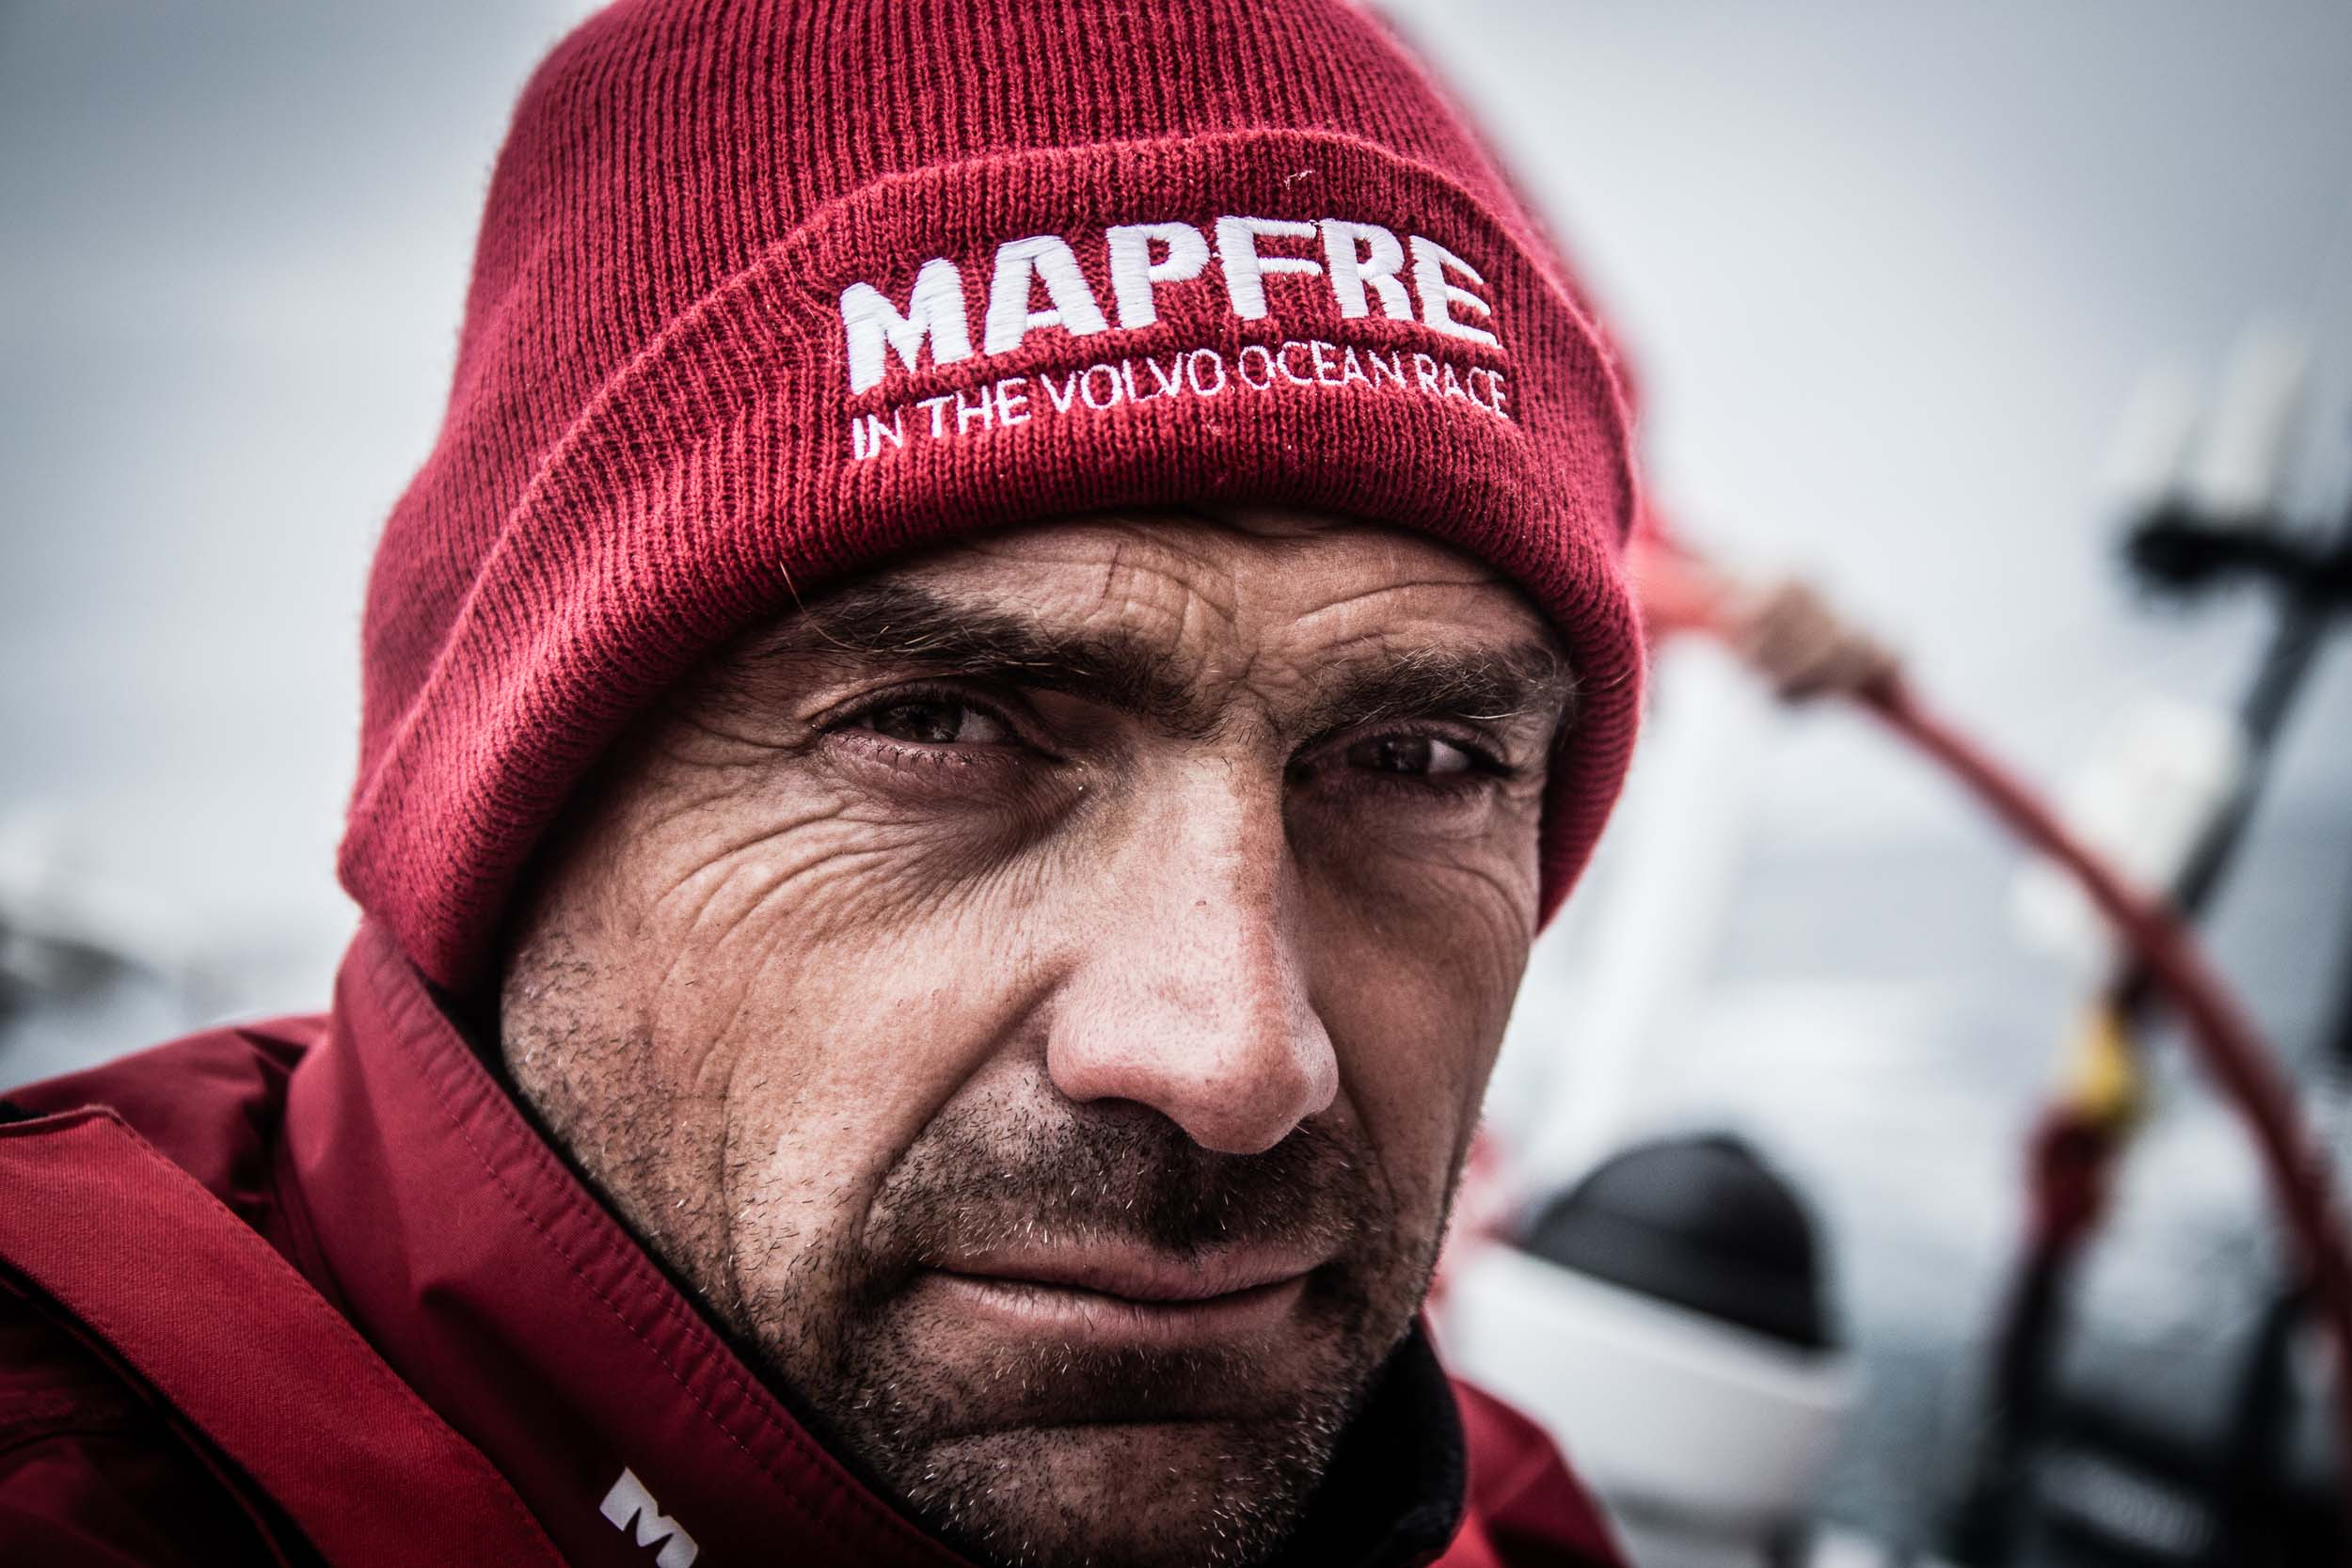 Volvo Ocean Race 2014 - 15 Leg 9 to Gothemburg